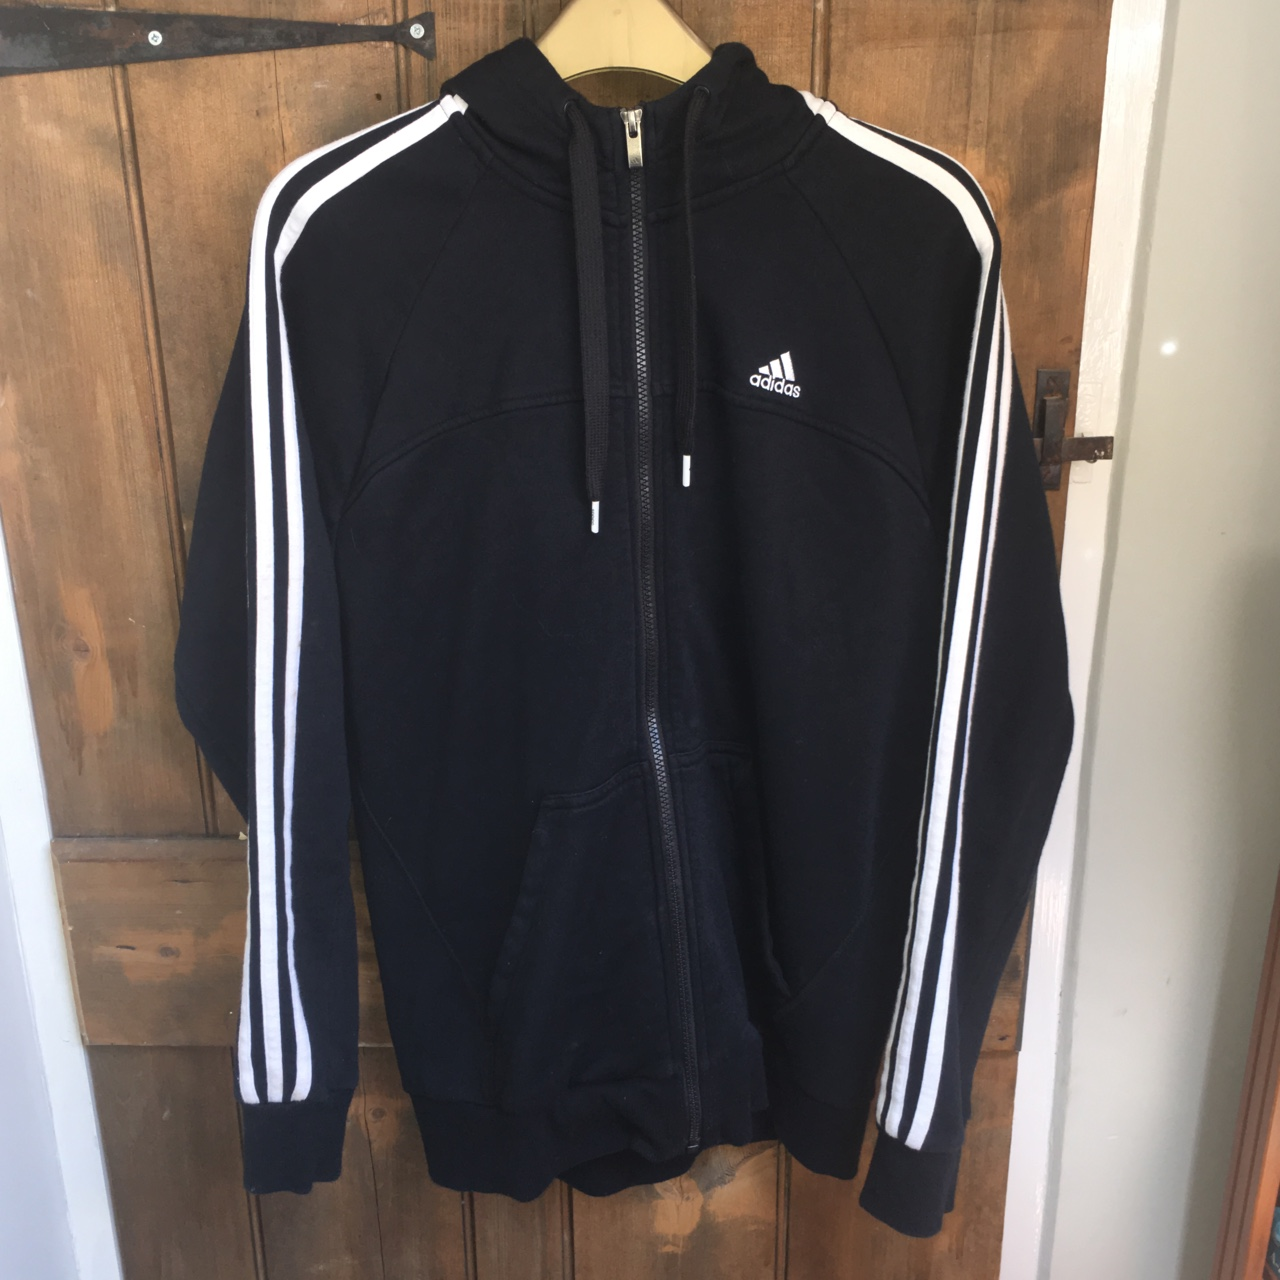 Adidas performance essentials hoodie with zip. Black Depop